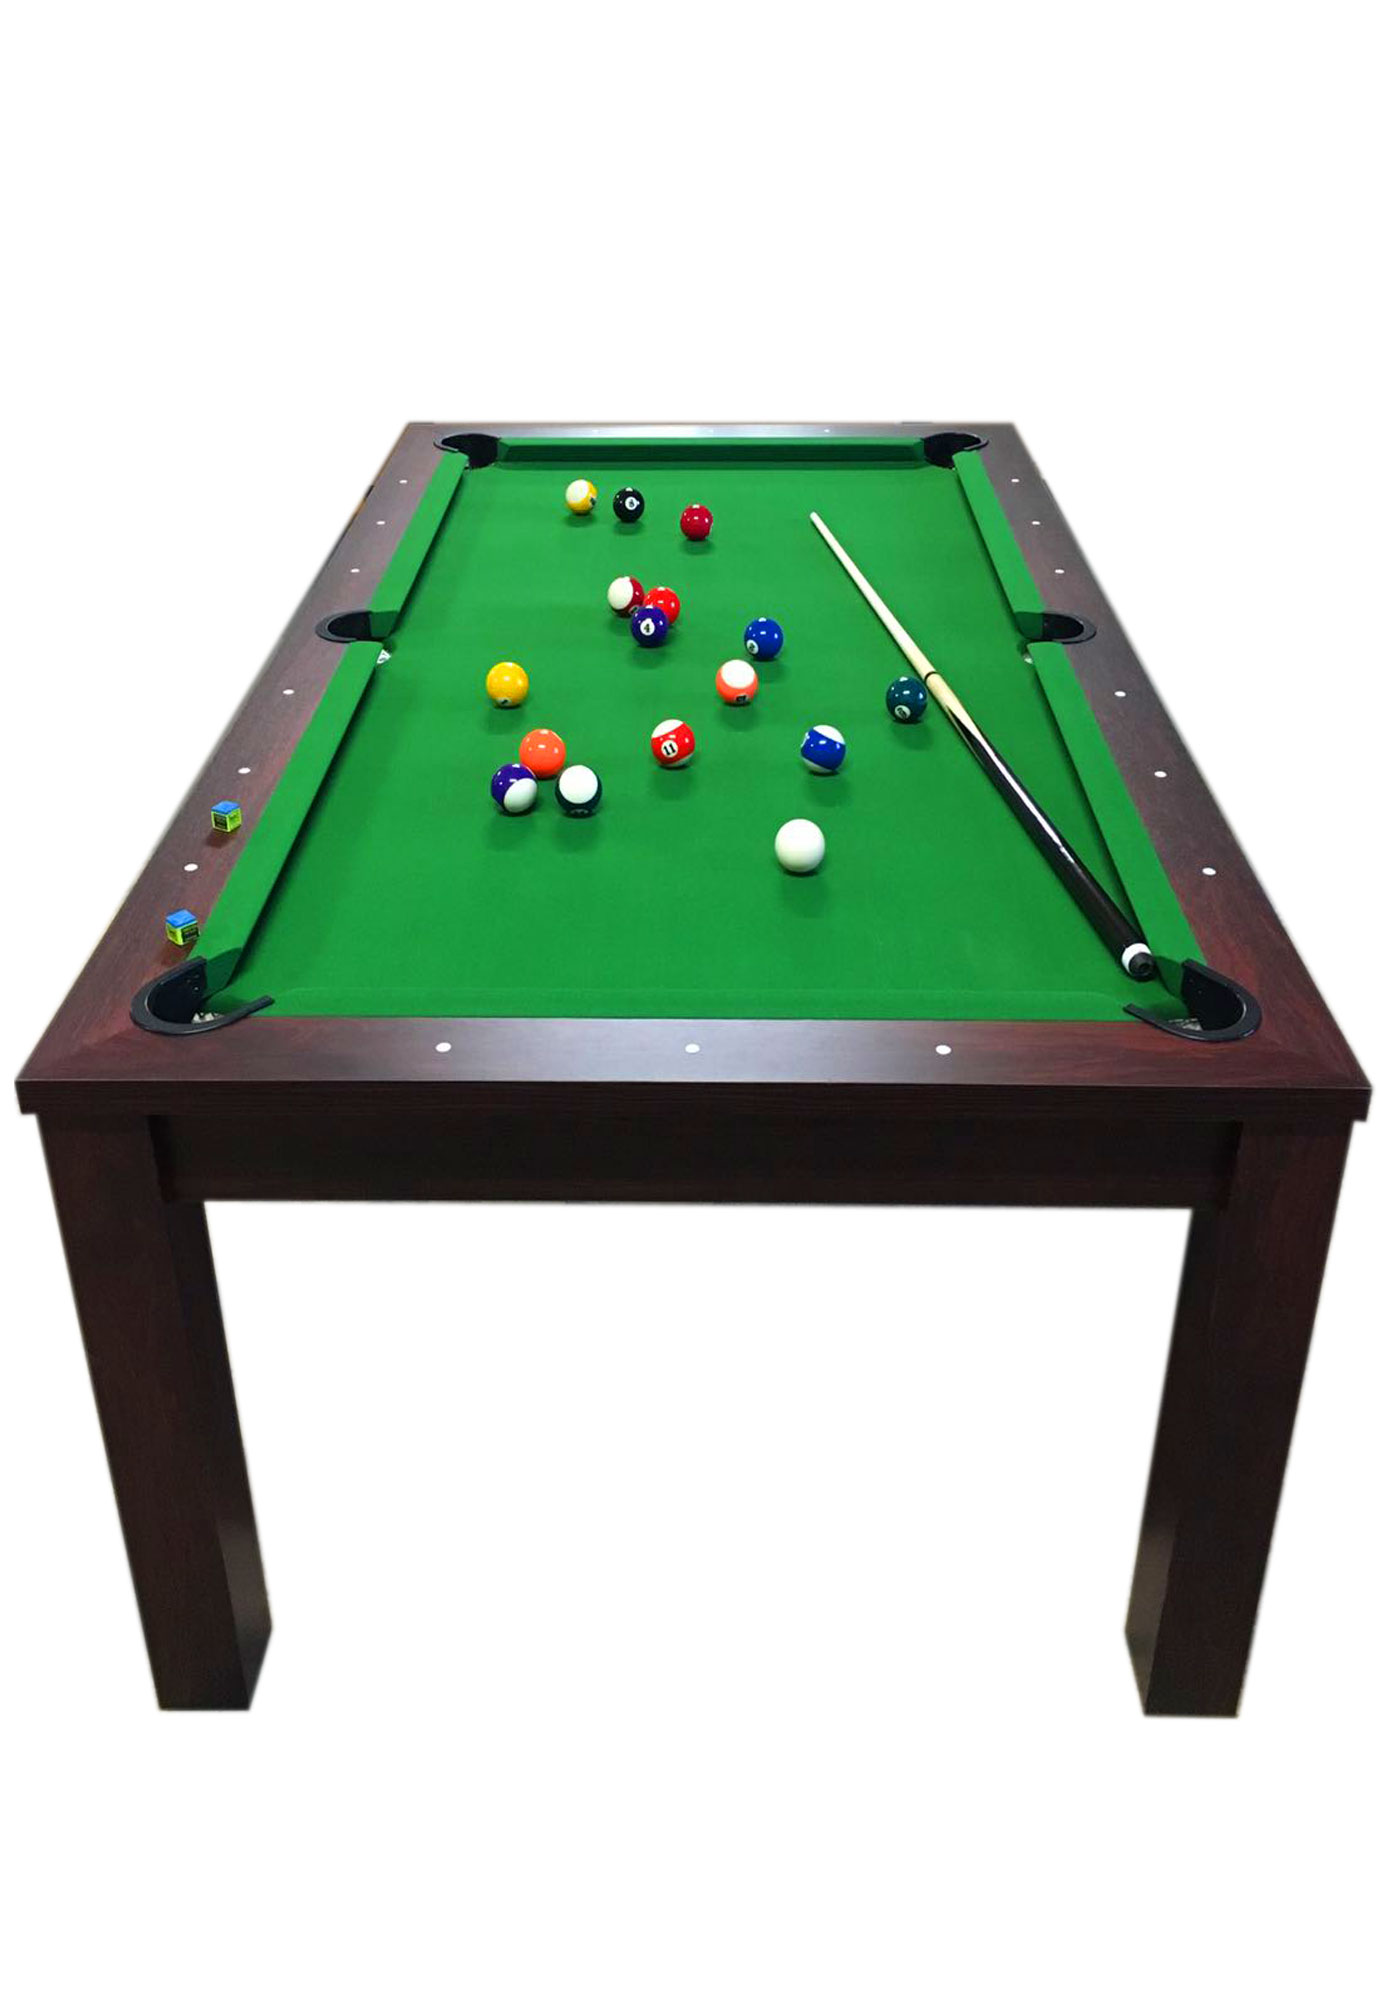 posh full snooker seconds professional product quality table pool marbella sized